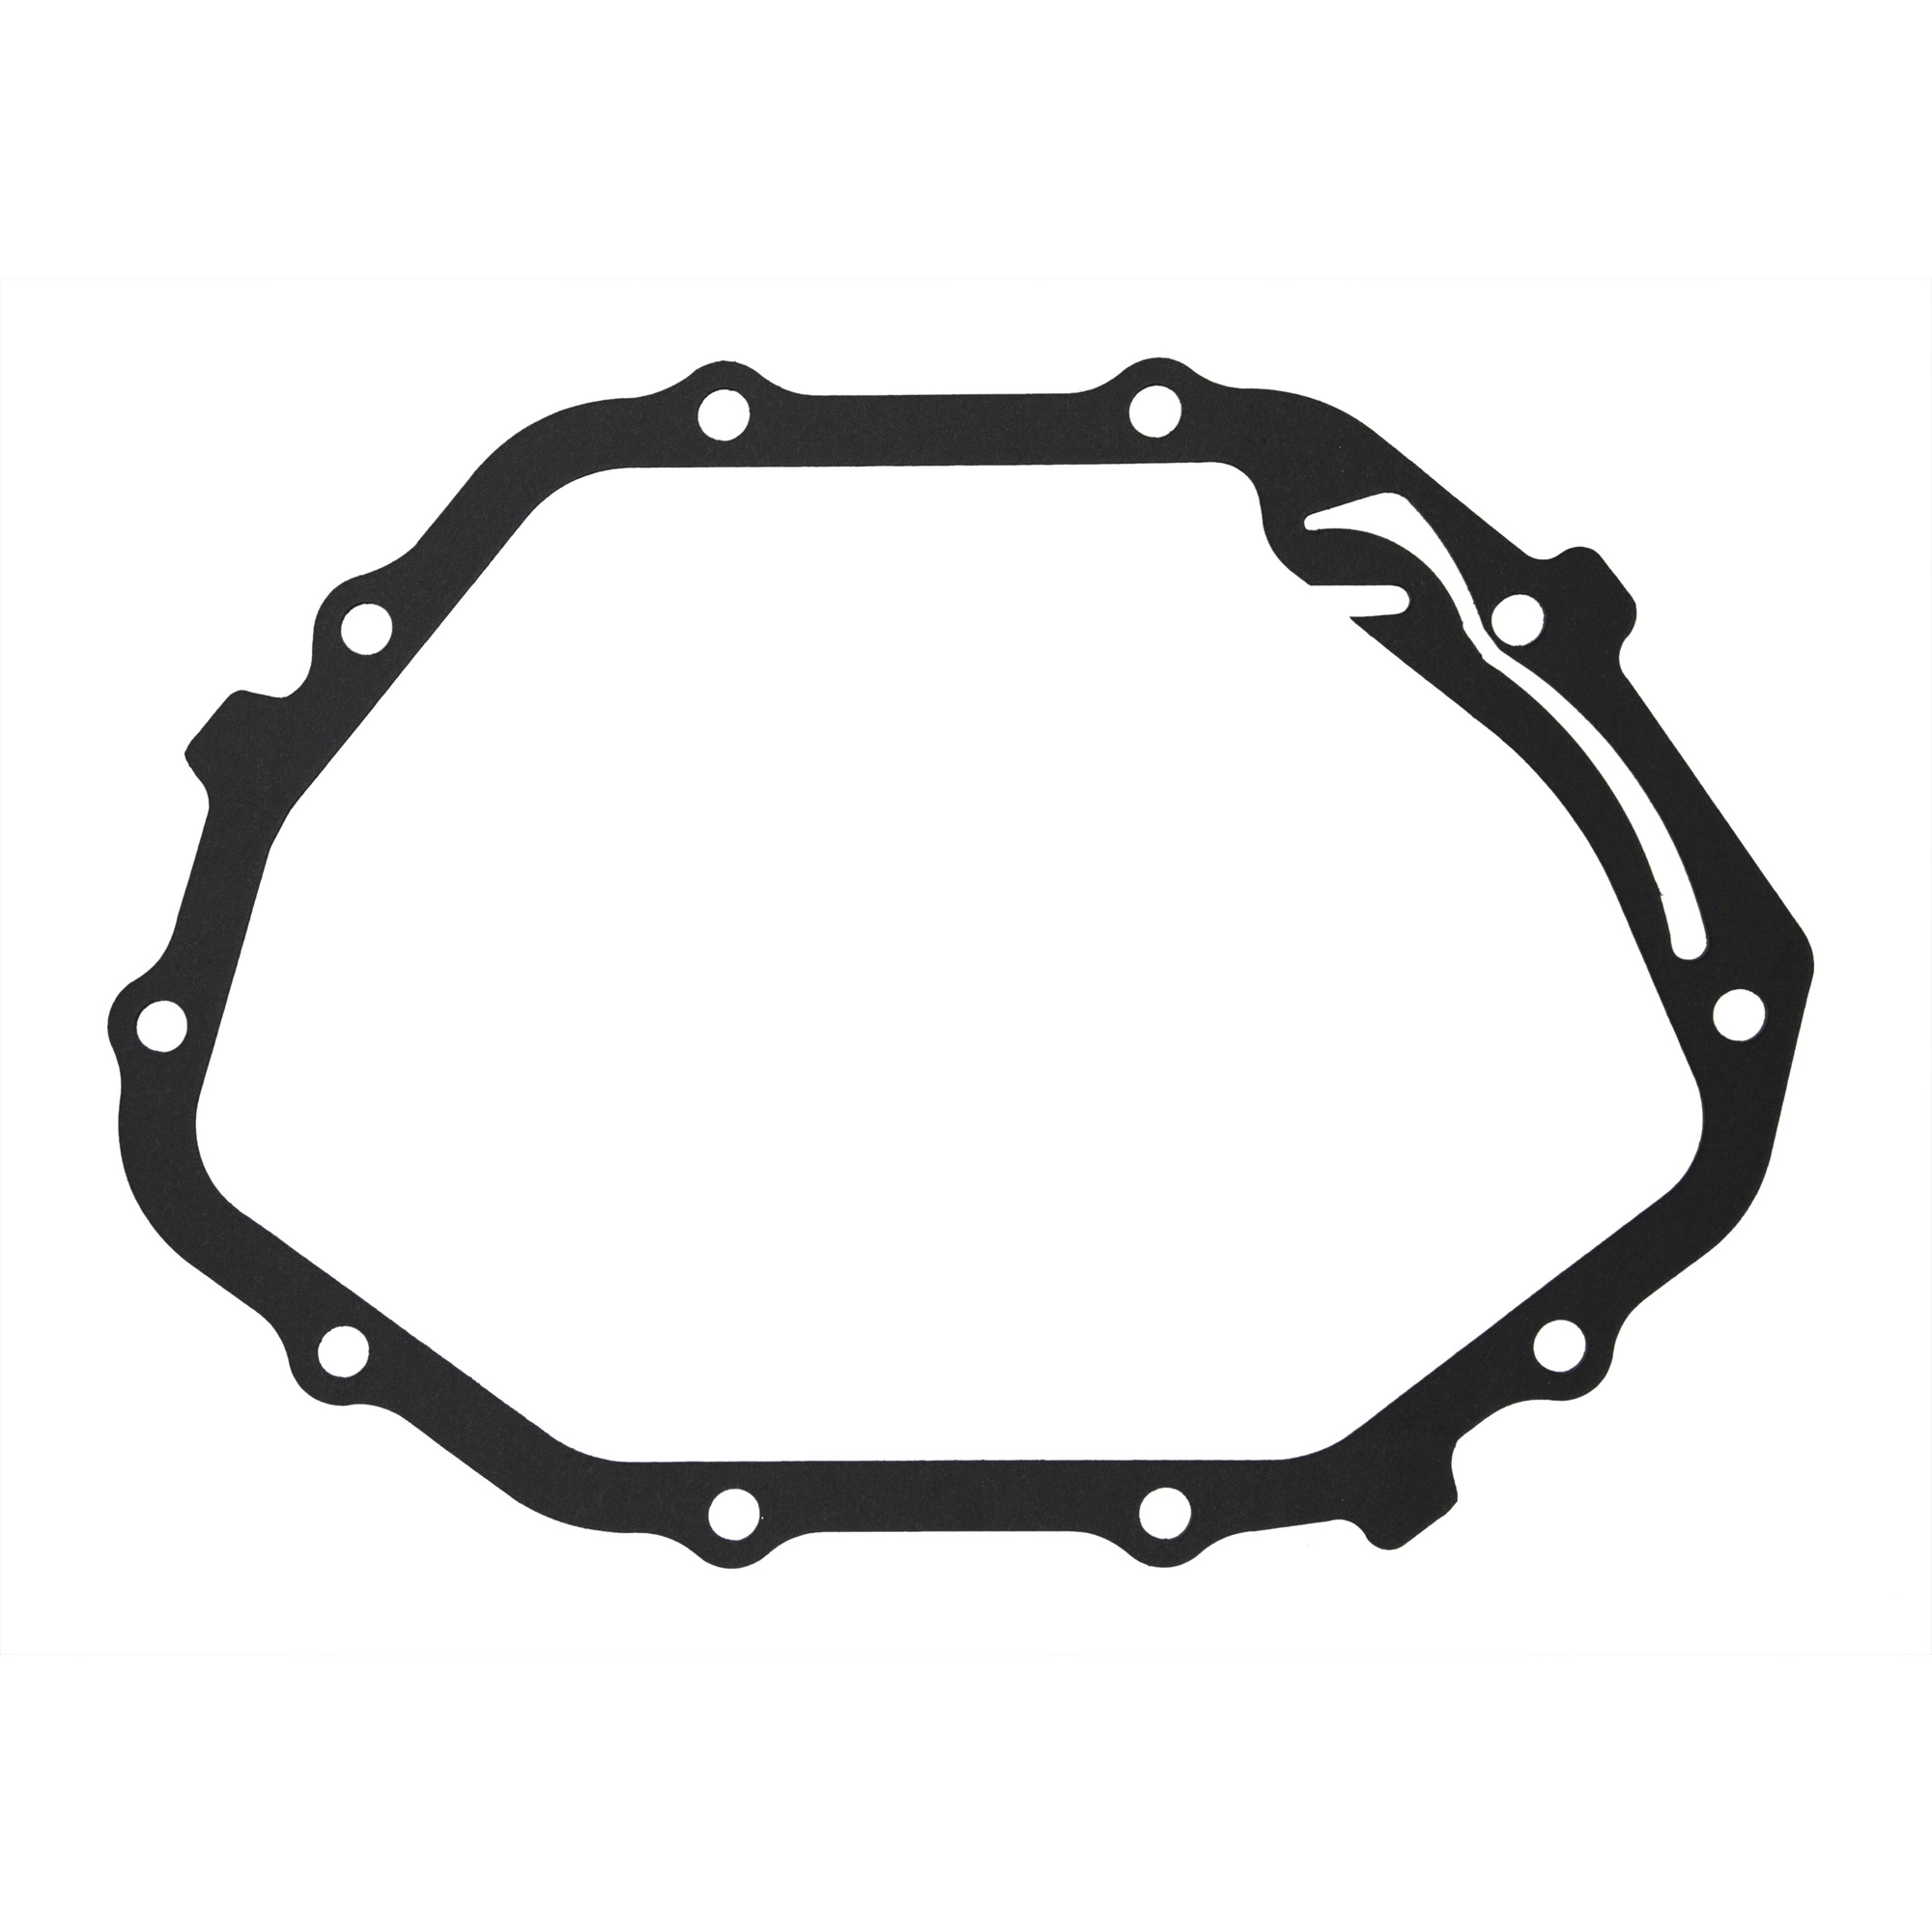 Automatic Transmission Differential Carrier Gasket